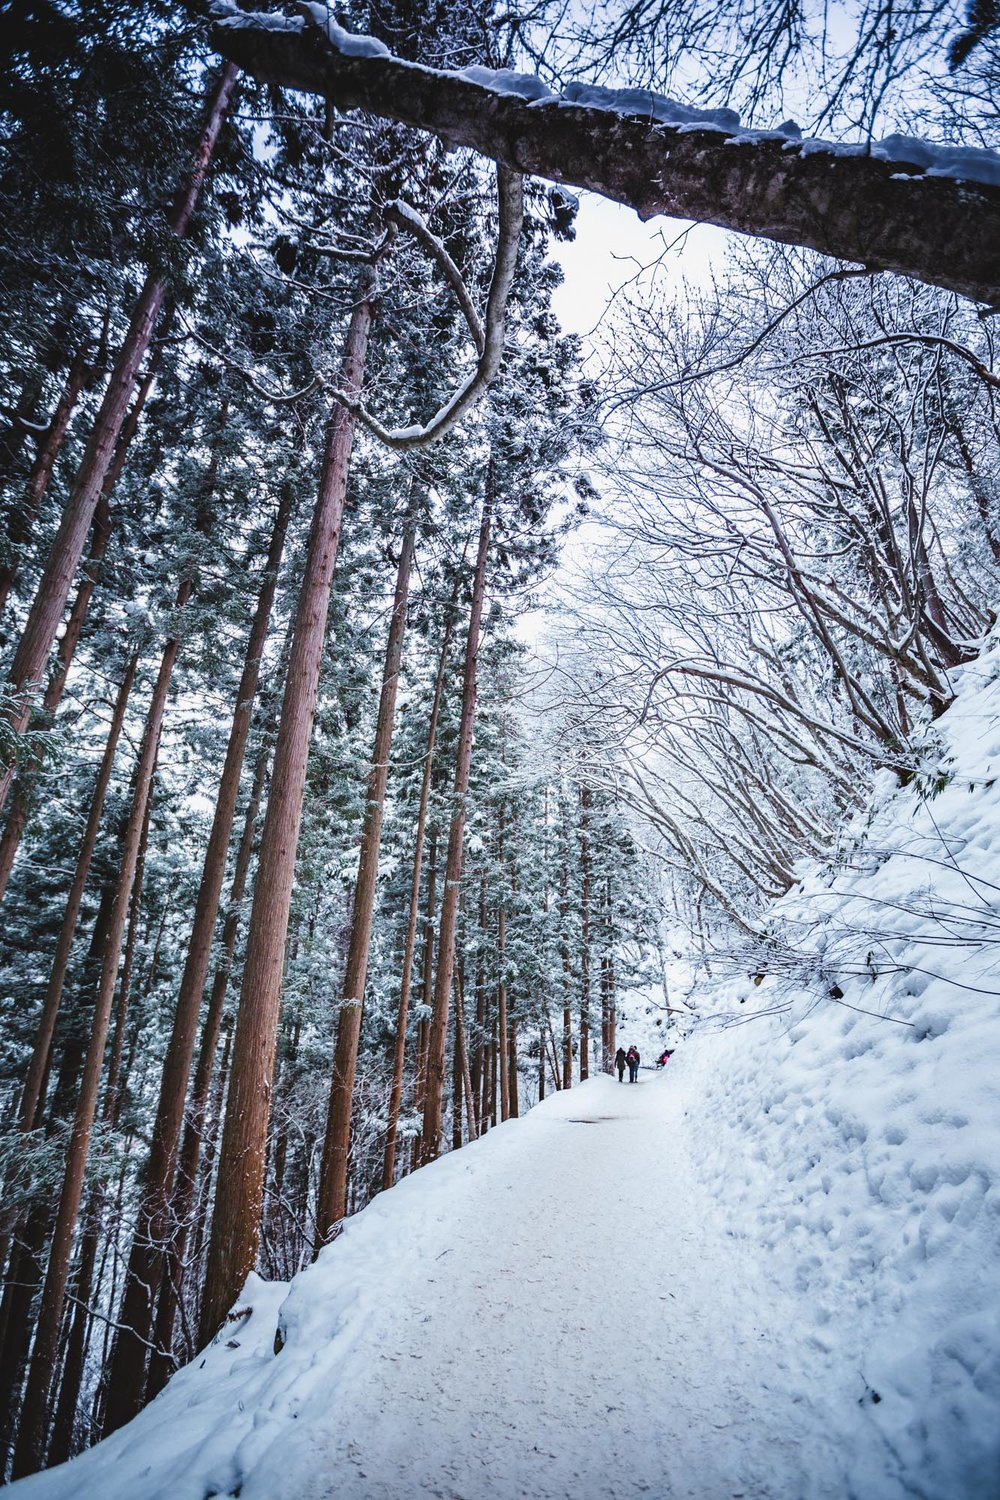 Snow Monkey Park: Nagano in Winter_Japan Photography_James Feng Design_Sydney Freelance Designer